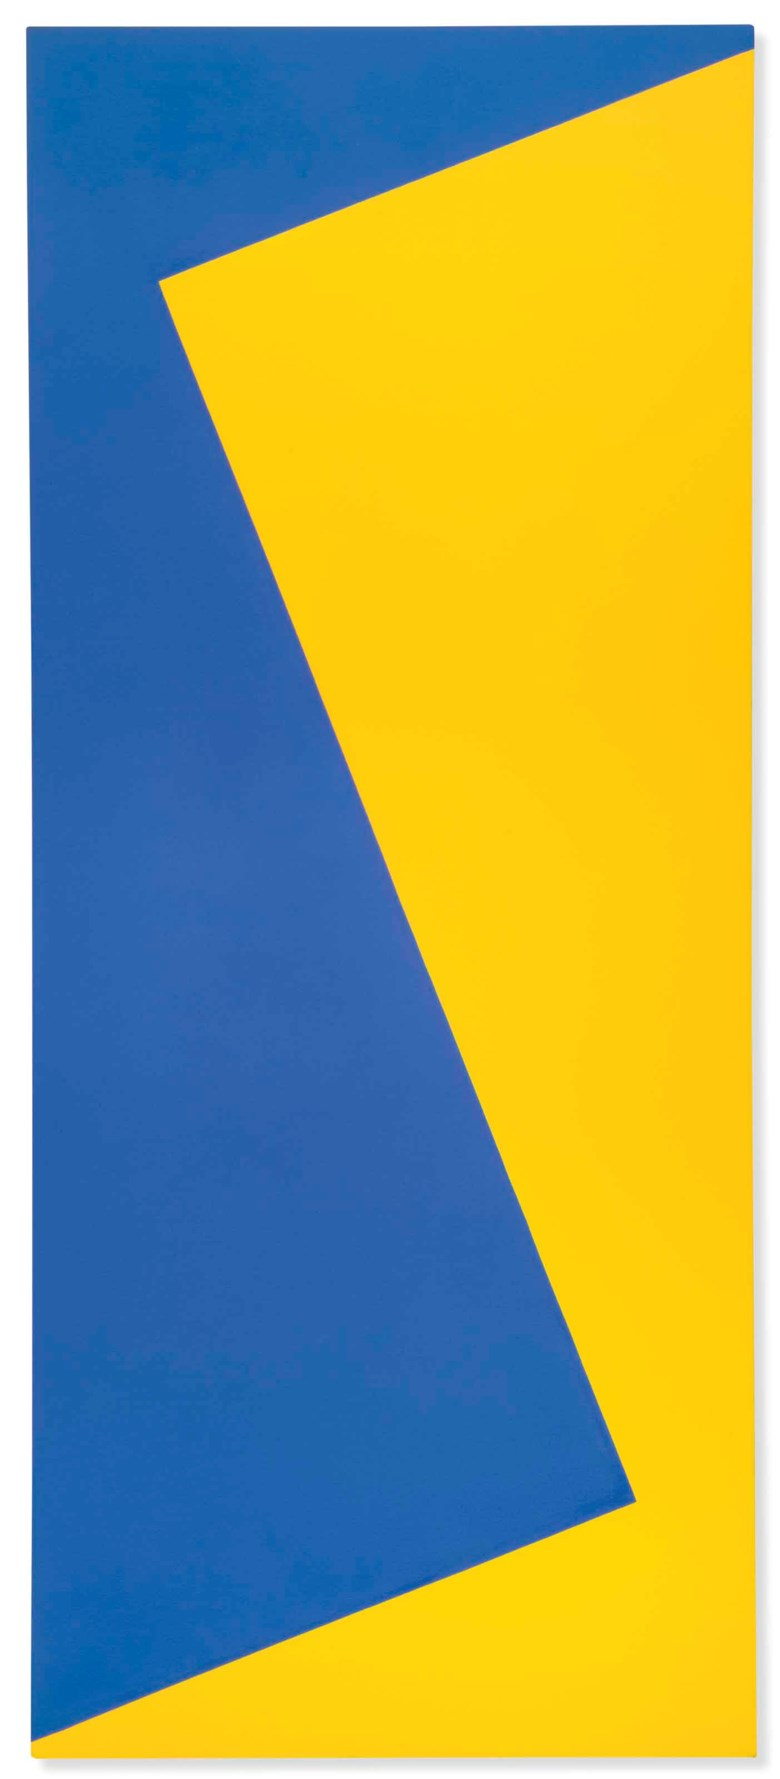 Leon Polk Smith (1906-1996), Correspondence Blue, Yellow Medium, painted in 1968. 72 x 30 in (182 x 76 cm). Estimate £30,000-50,000. Offered in Post-War to Present on 28 June 2018 at Christie's in London